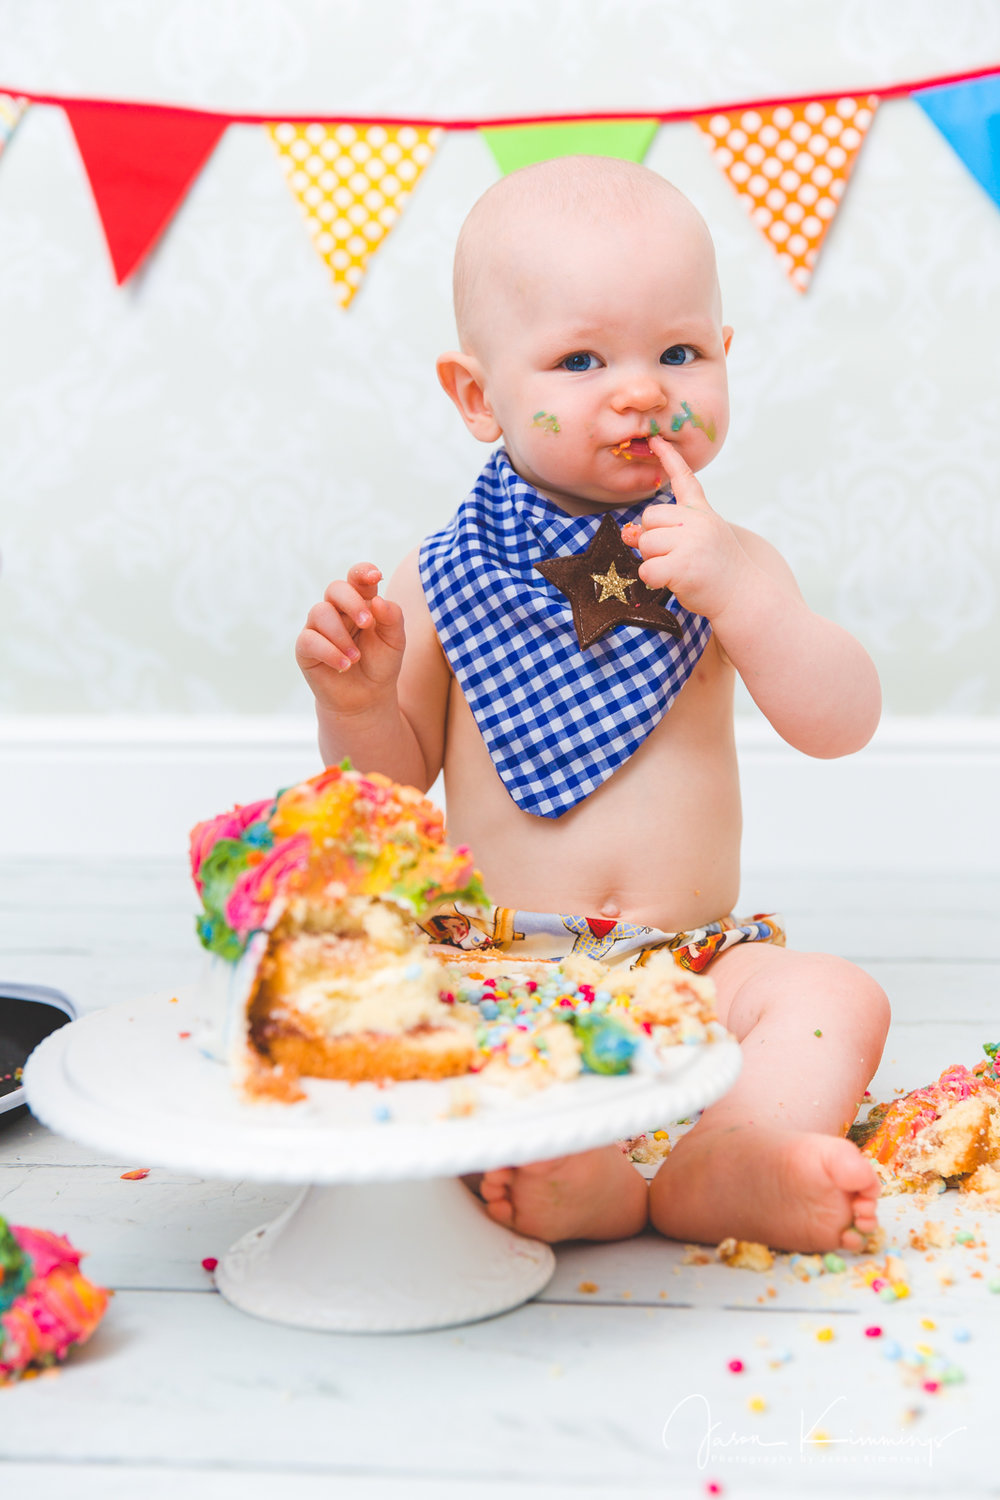 Cake-smash-photography-west-lothian-edinburgh-glasgow-7.jpg